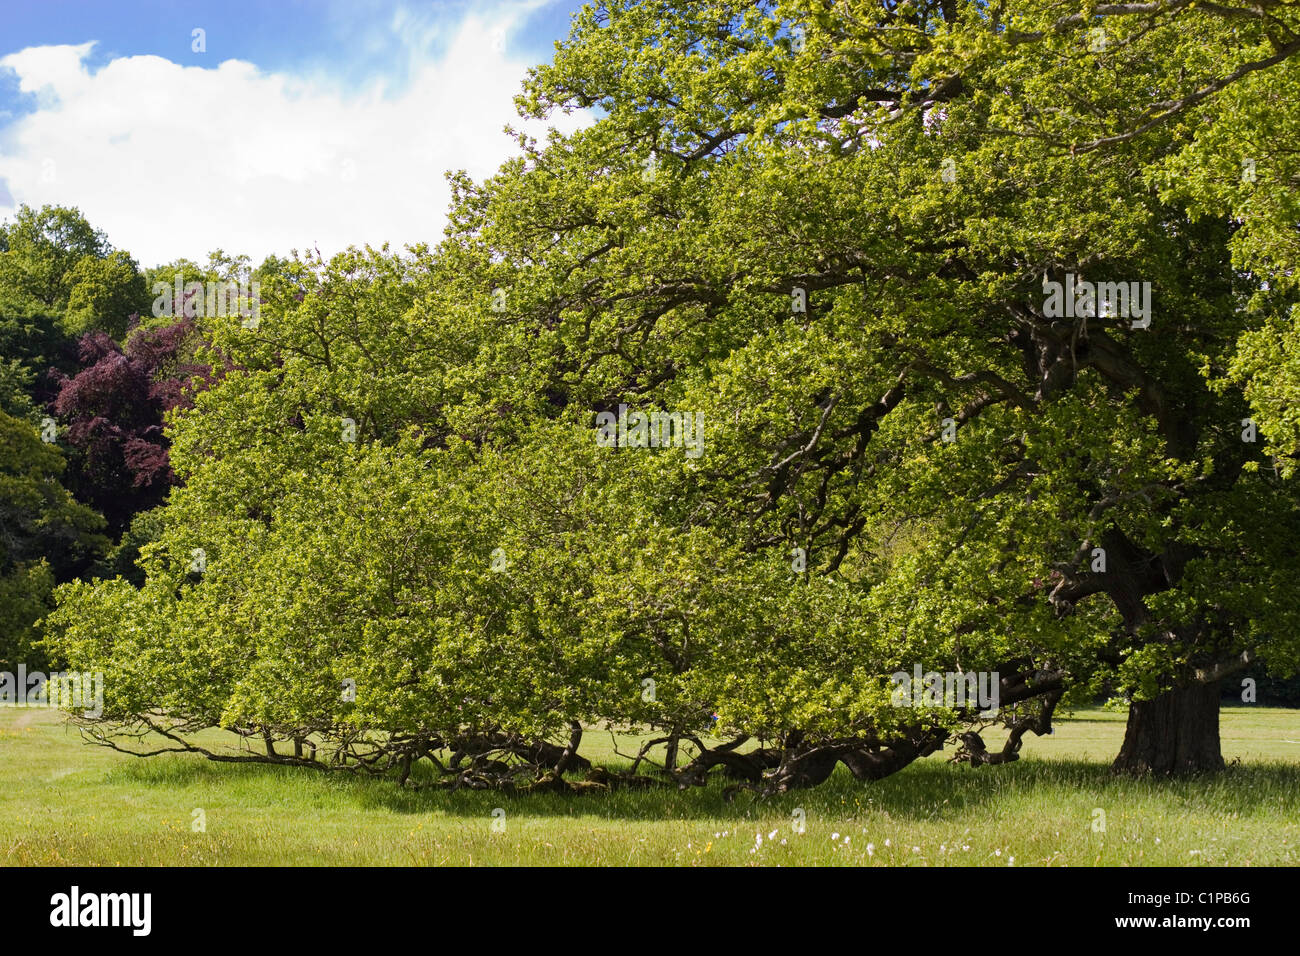 Scotland, Lothian and Borders, ancient oak tree in grounds of Floors Castle - Stock Image